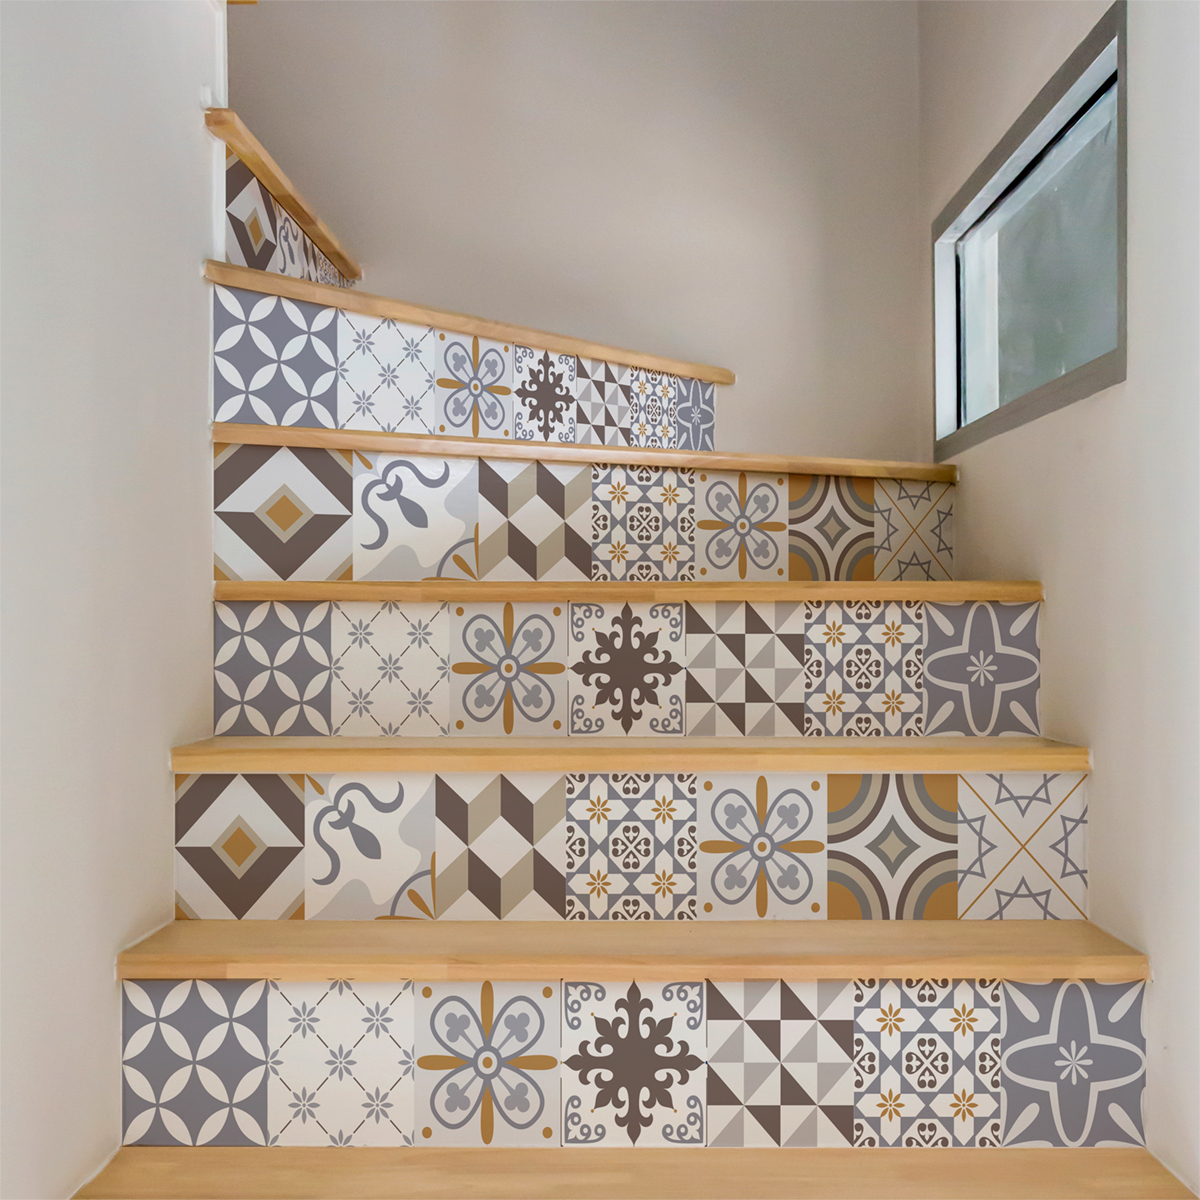 Stickers Escalier Carrelages Ornements Sobres X 2 Ambiance